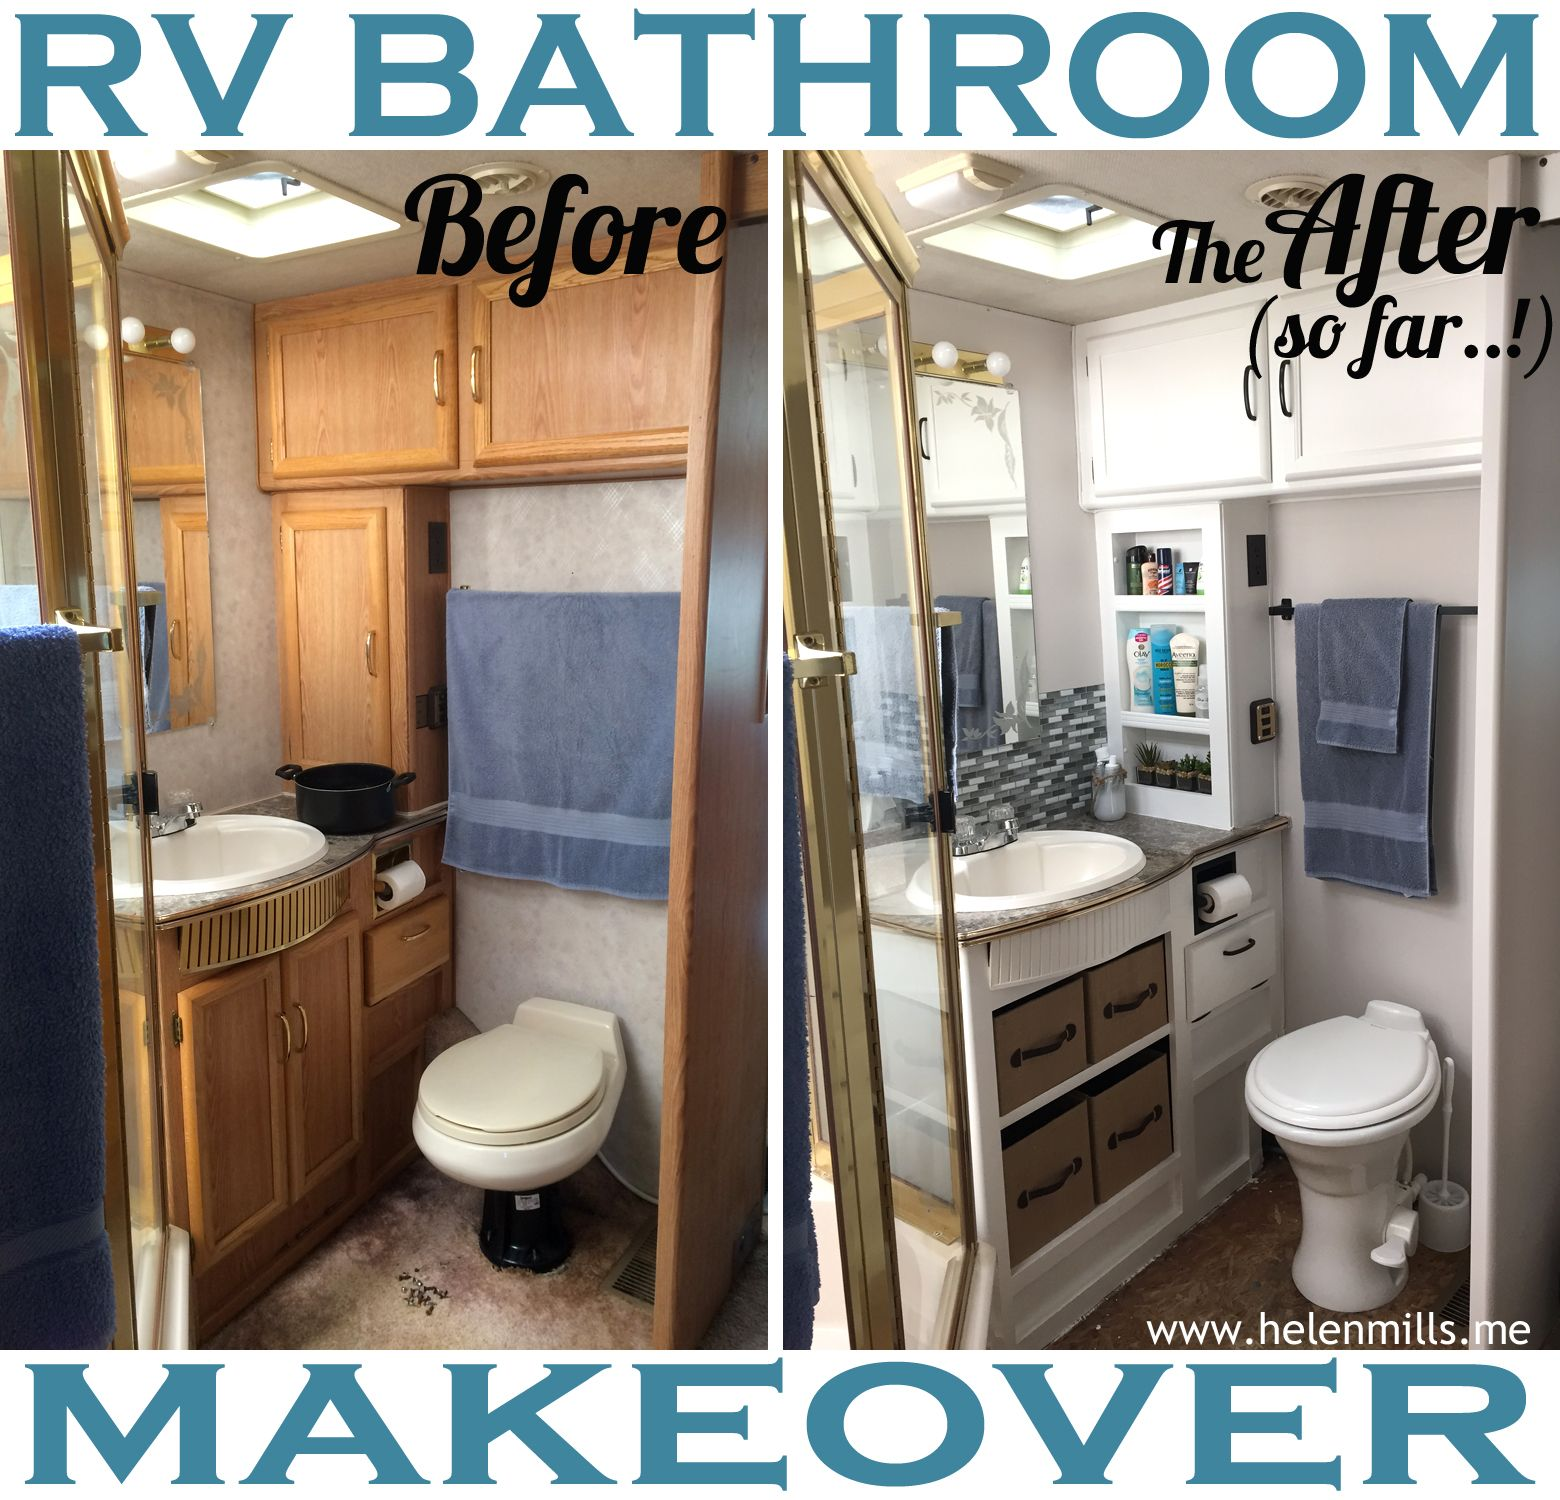 Diy rv interiors - Rv Remodeling